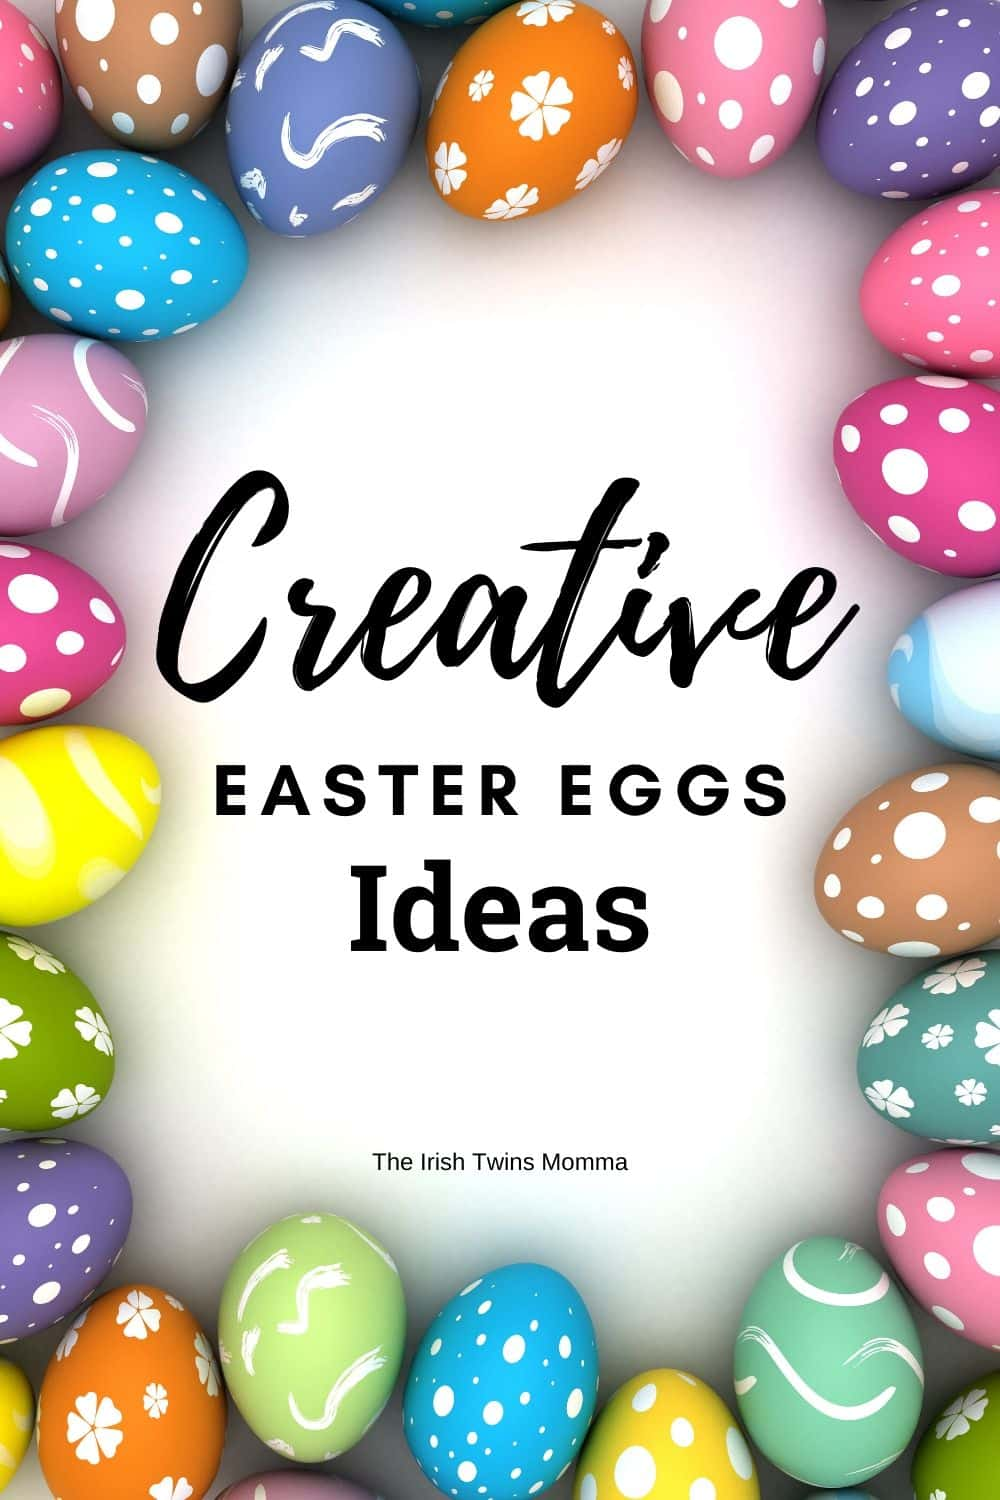 Be creative this year and try something new when dying Easter eggs that will make beautiful art that you can display for others to see. via @irishtwinsmom11